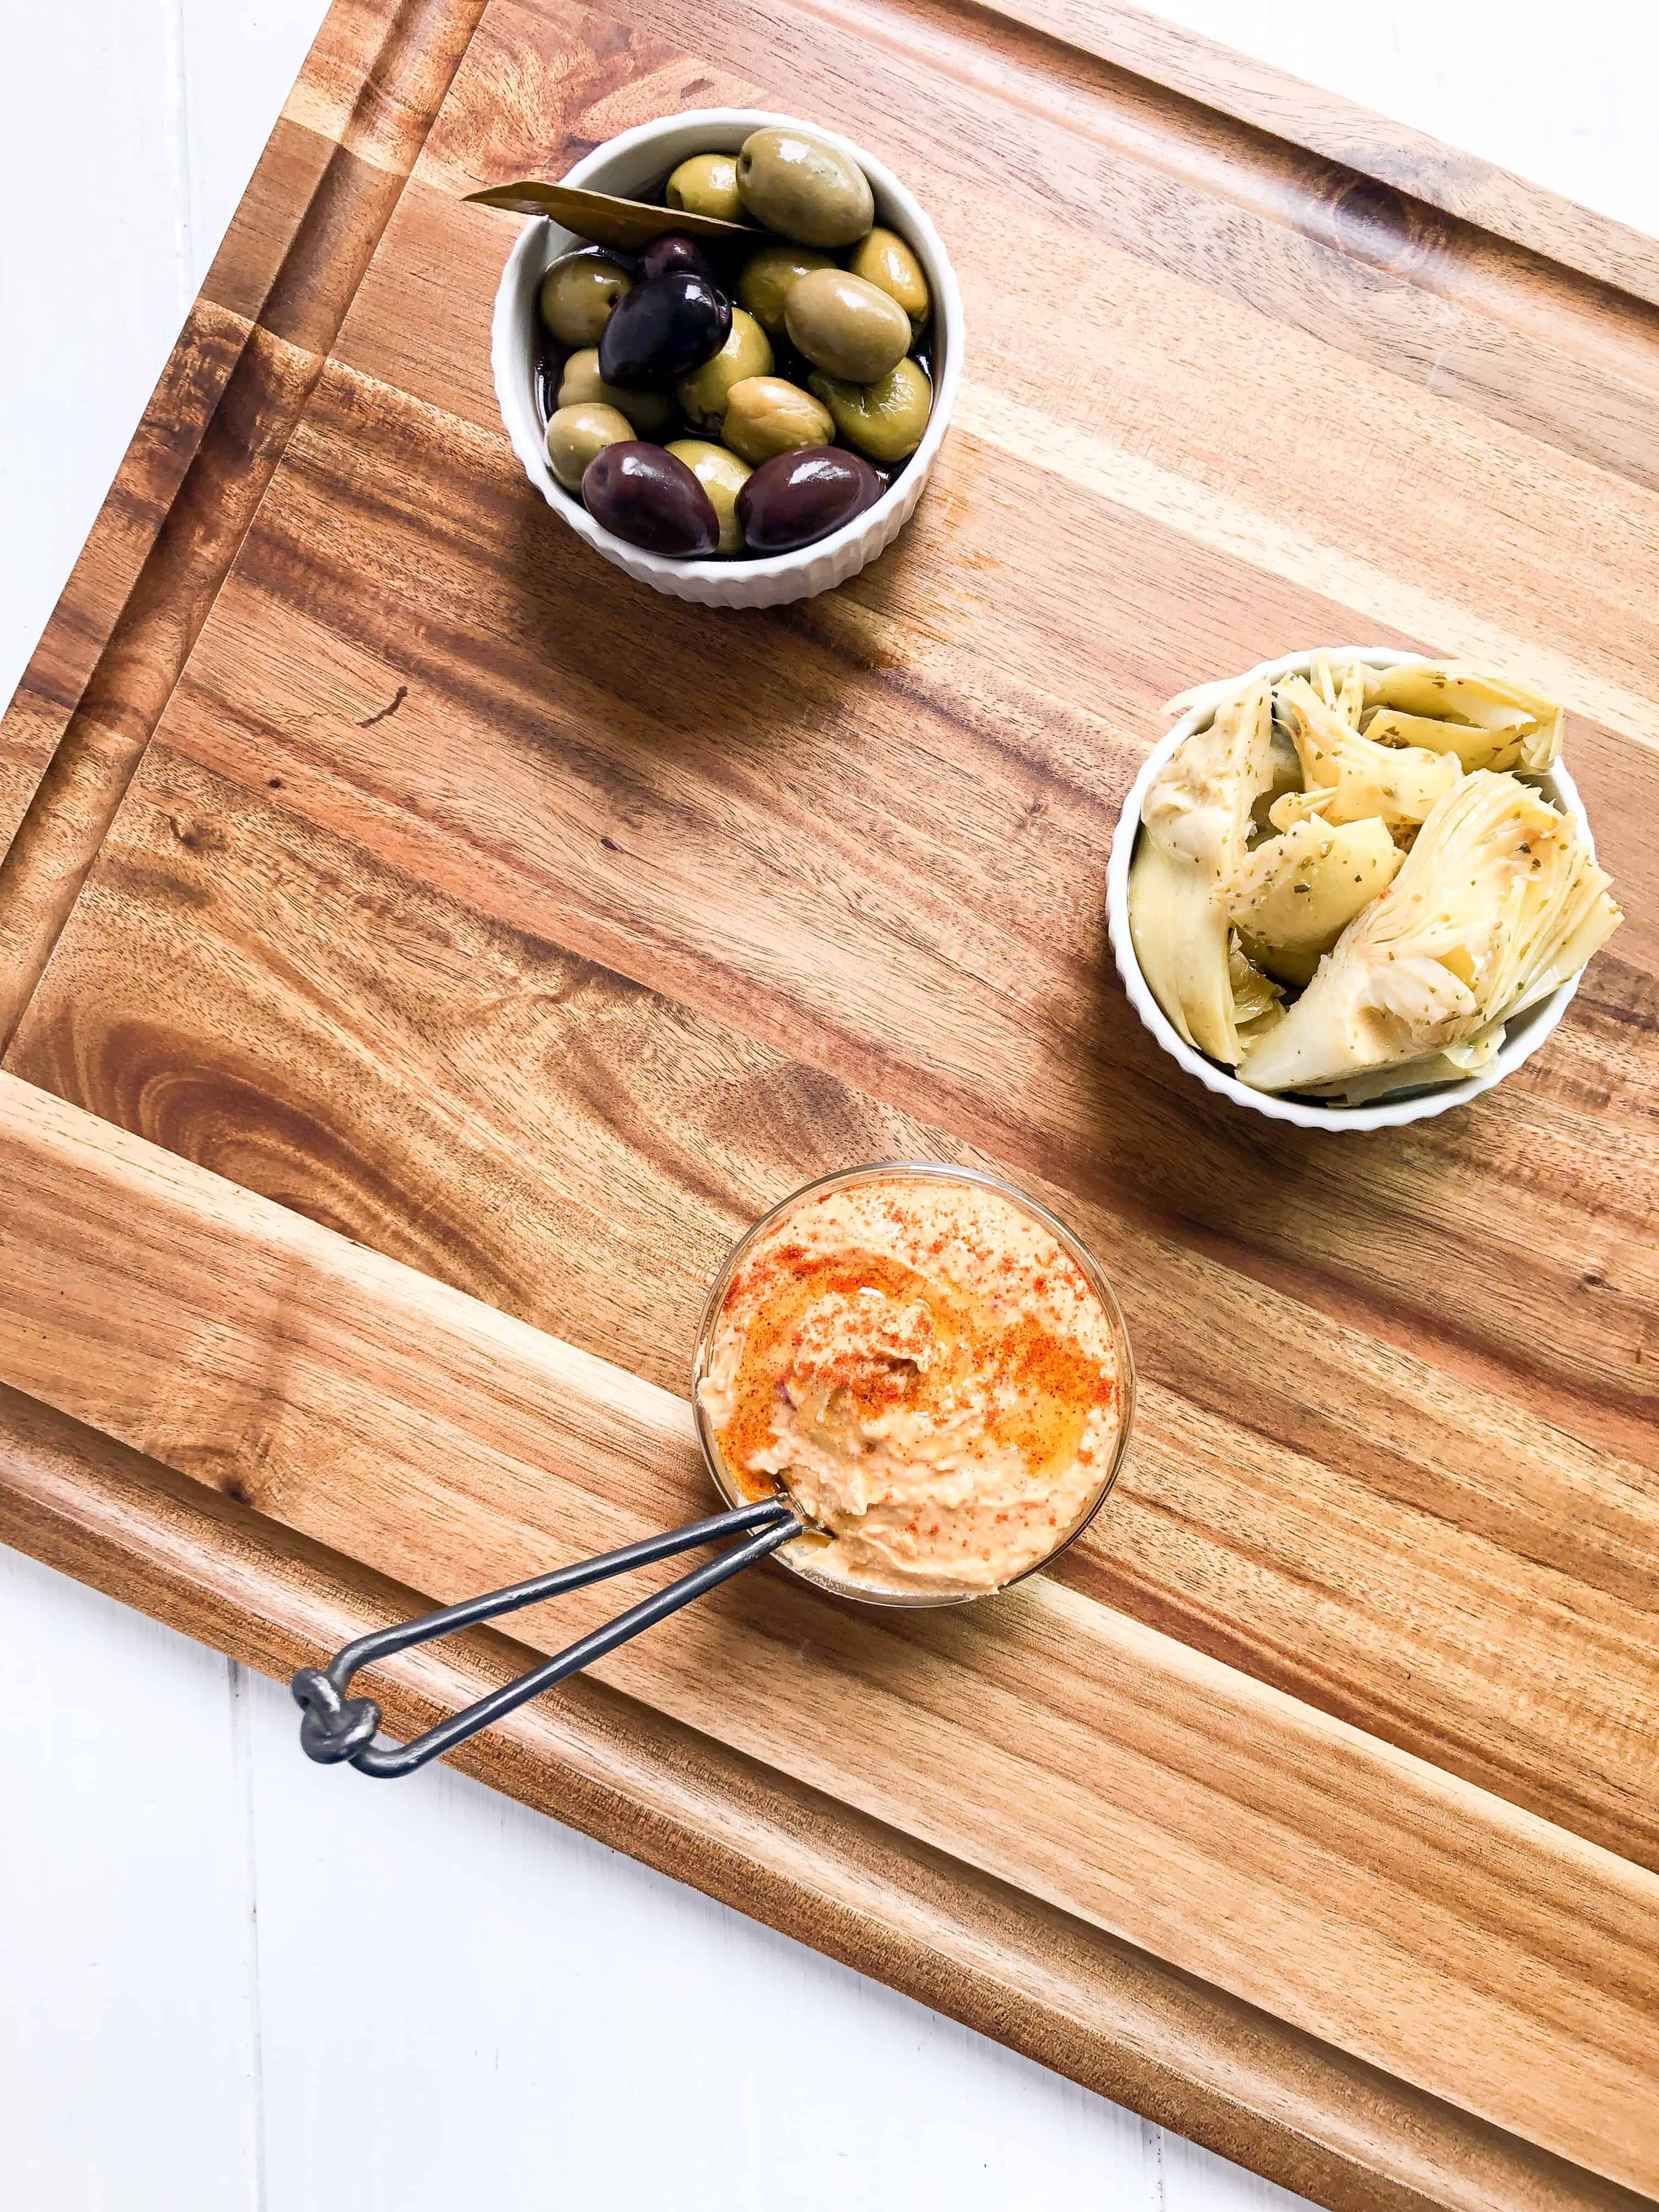 A cutting board with olives, hummus, and artichoke hearts